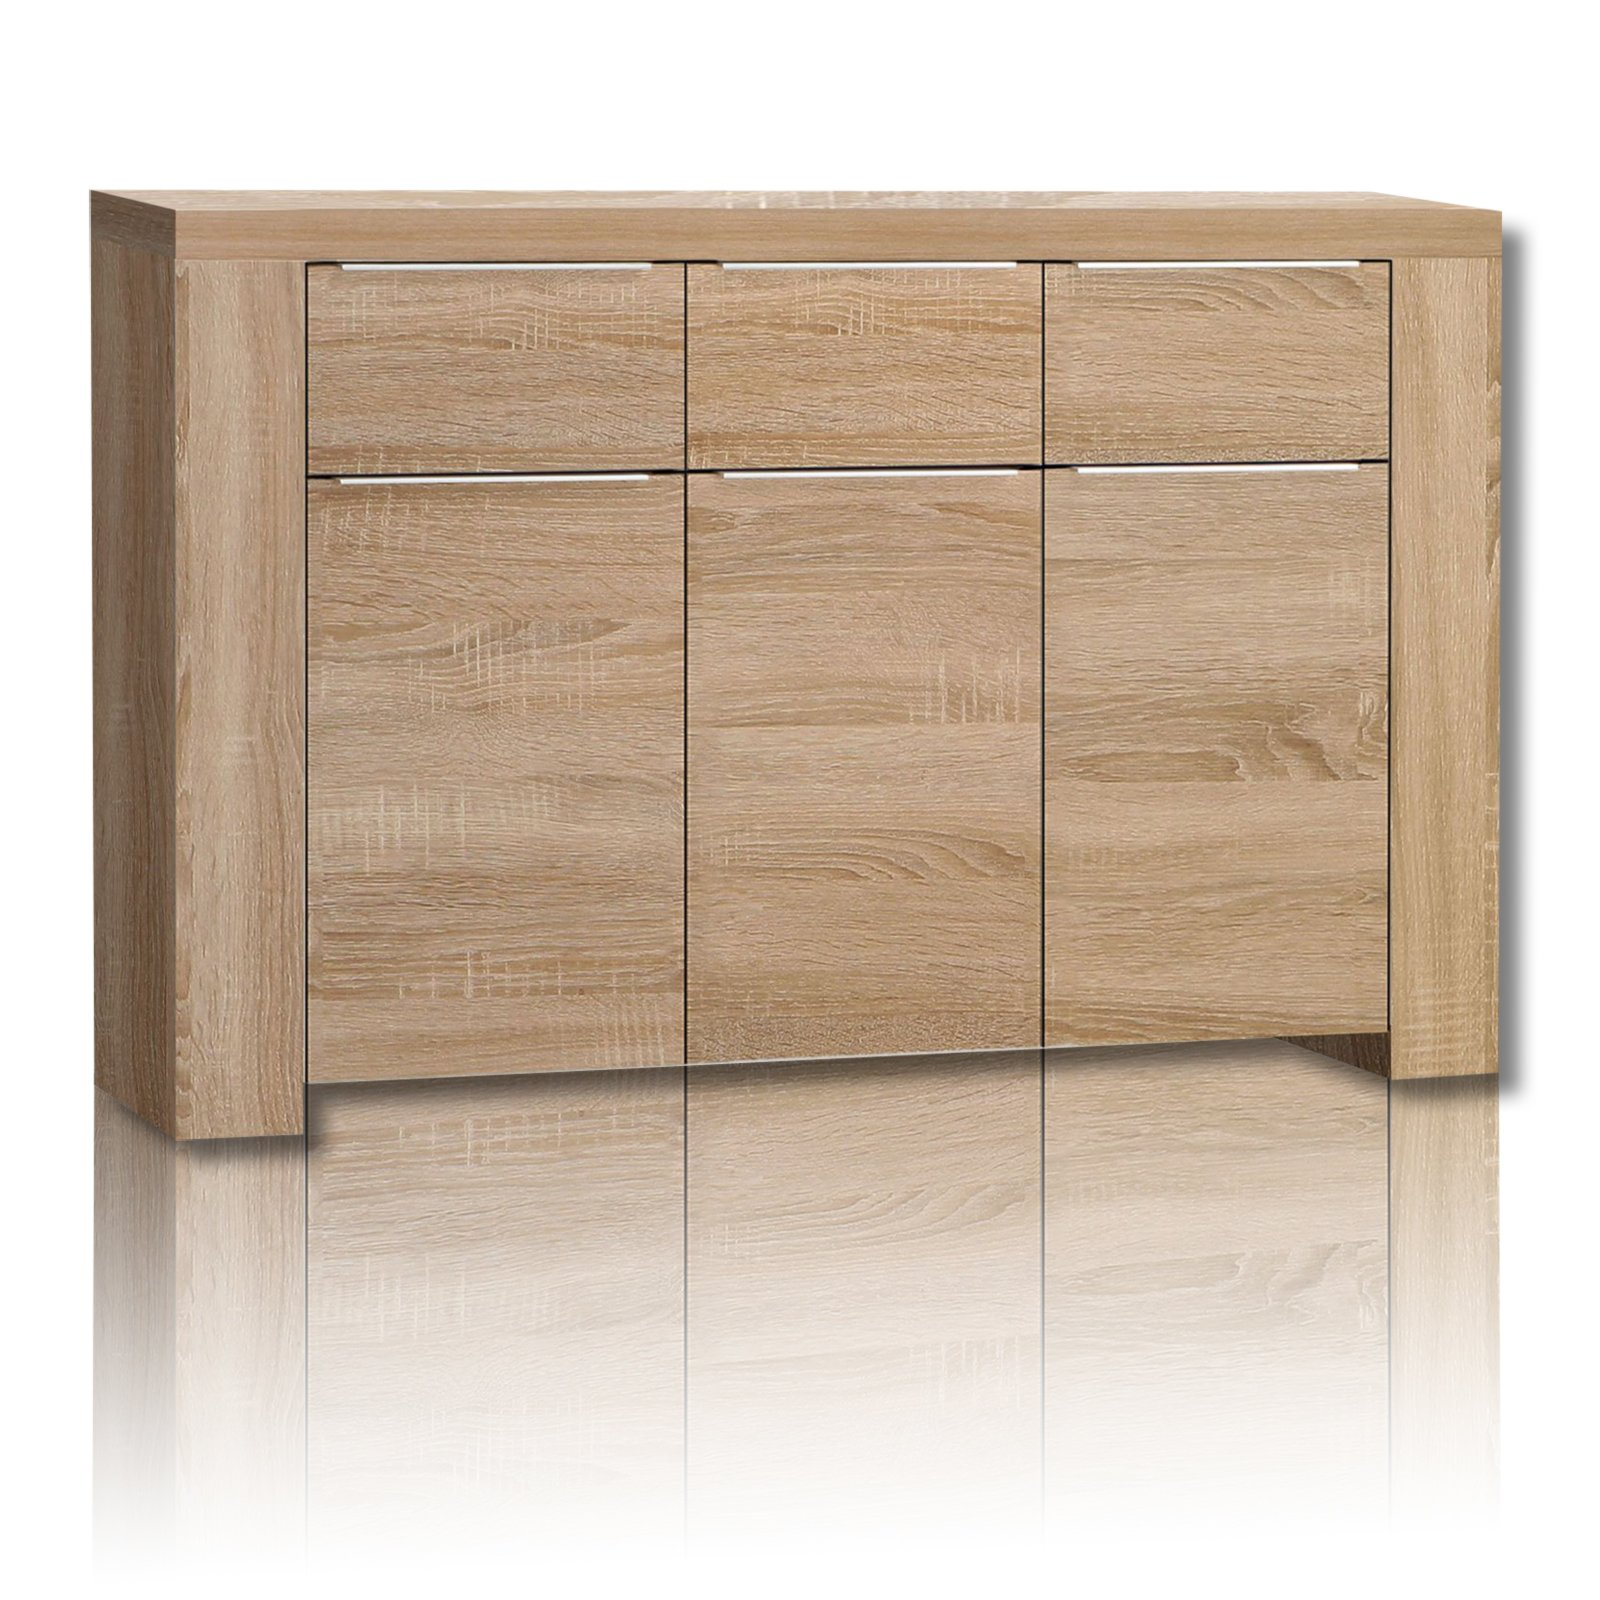 kommode calpe sonoma eiche 144 cm kommoden sideboards m bel roller m belhaus. Black Bedroom Furniture Sets. Home Design Ideas